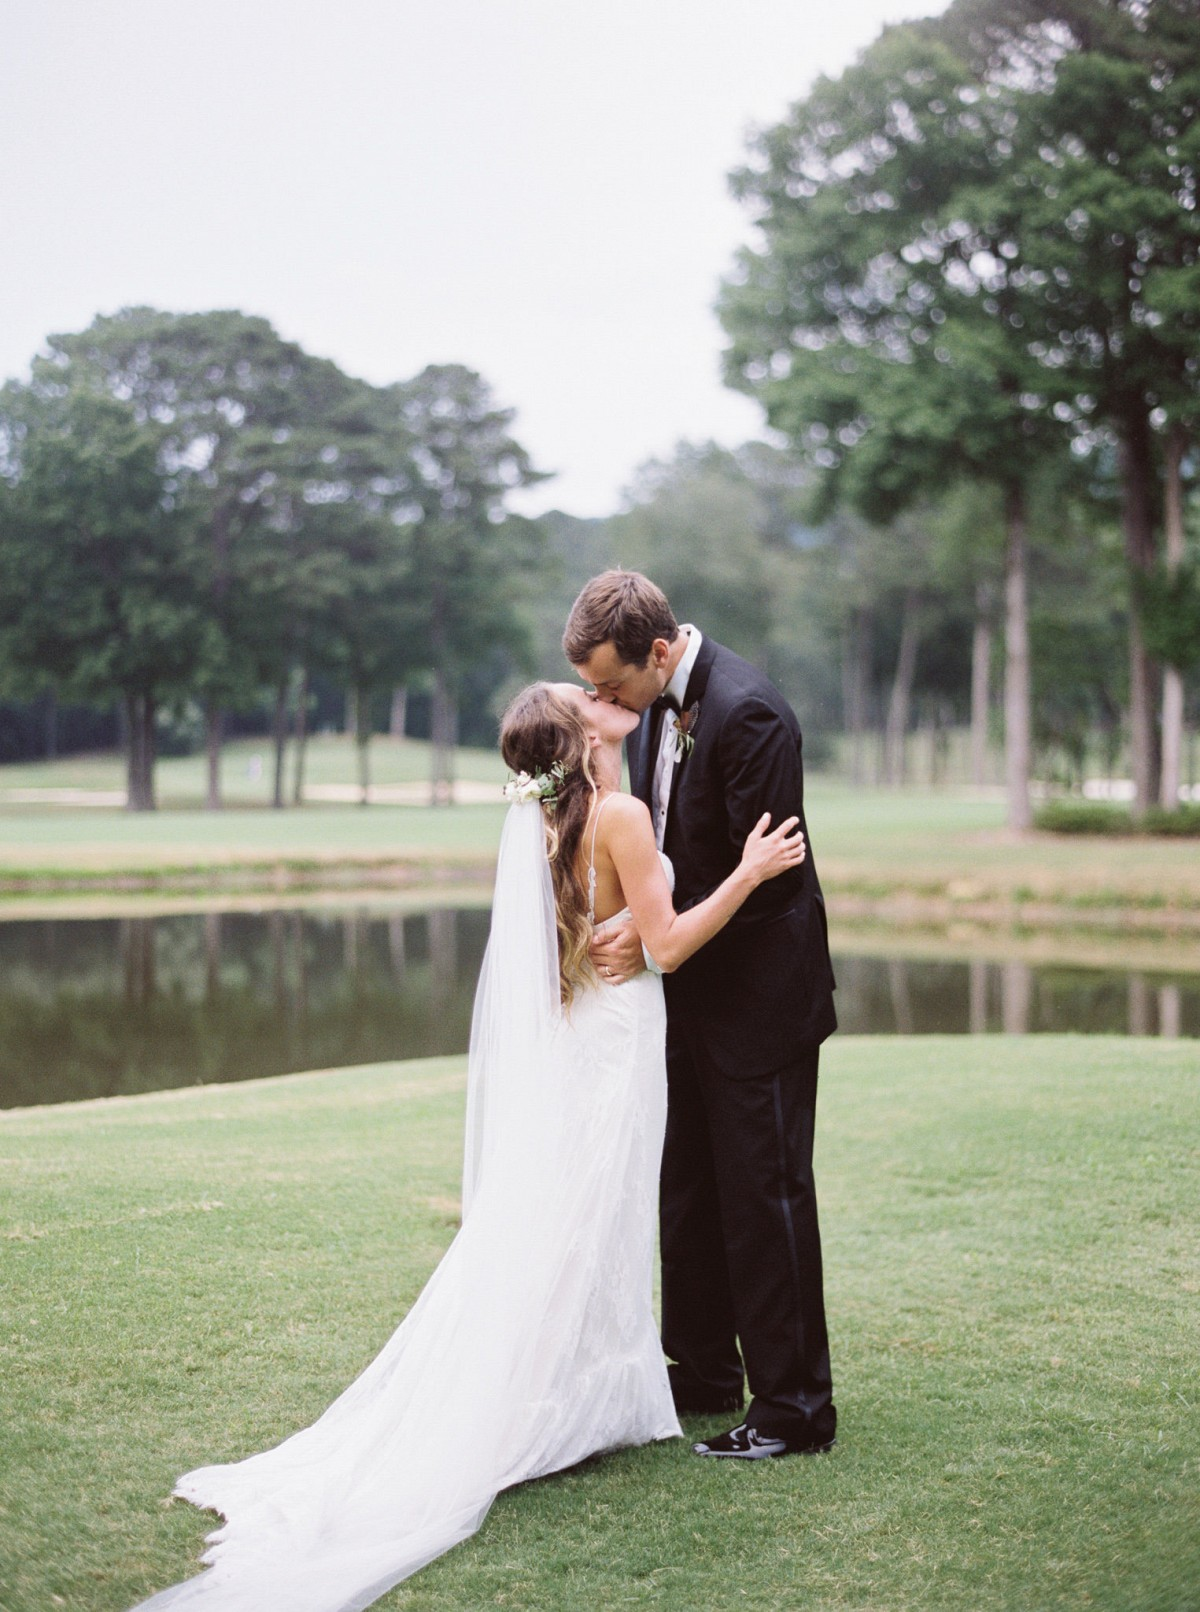 Country Club transformed into Boho Wedding